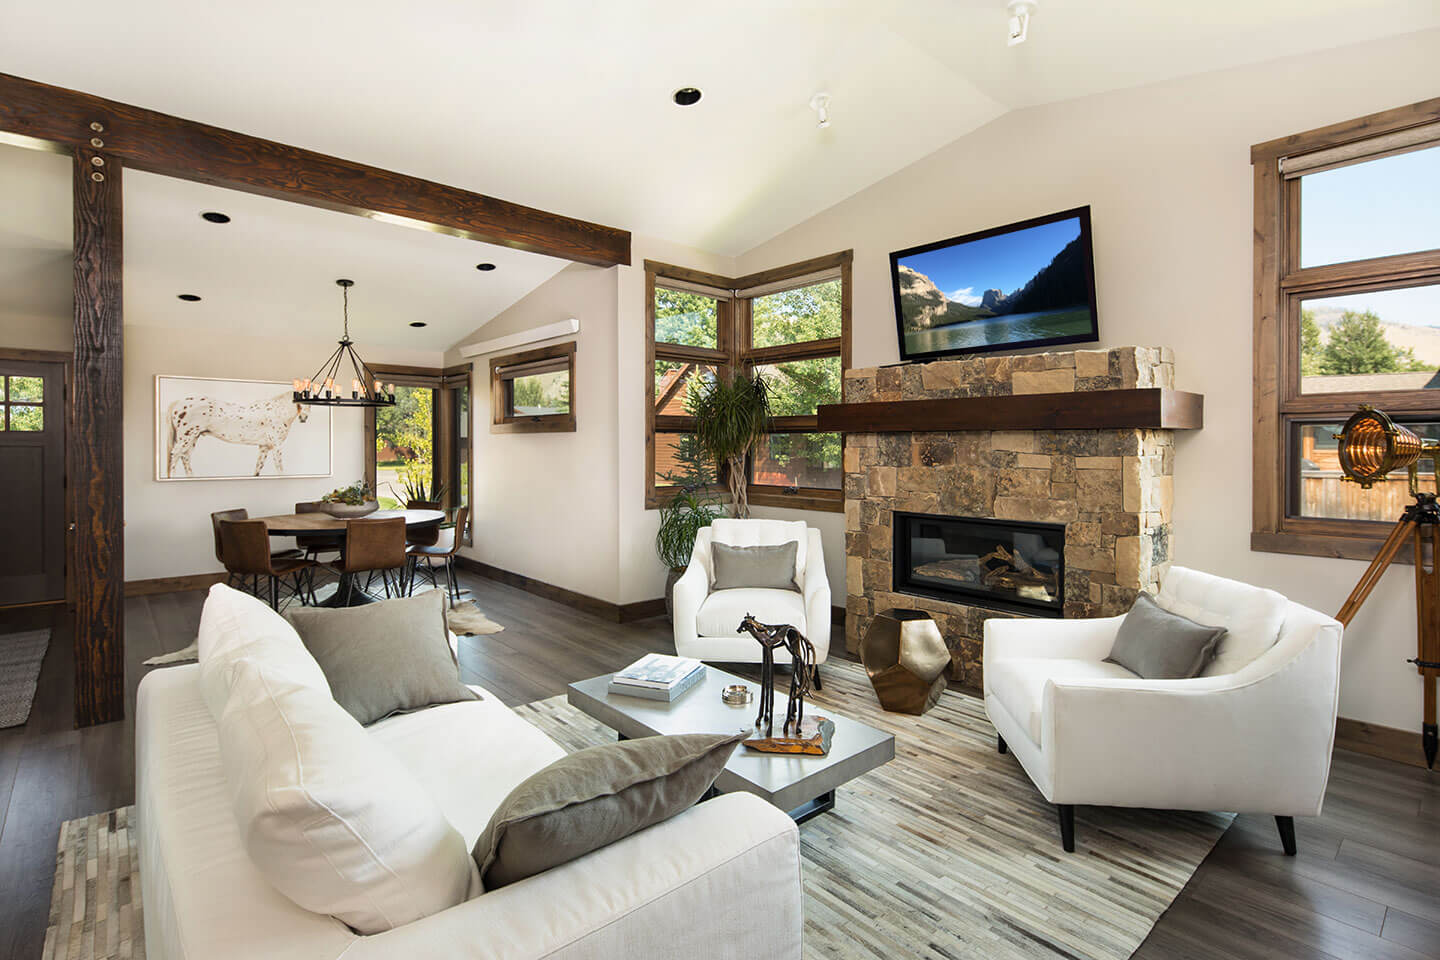 Modern living room with a wooden beam